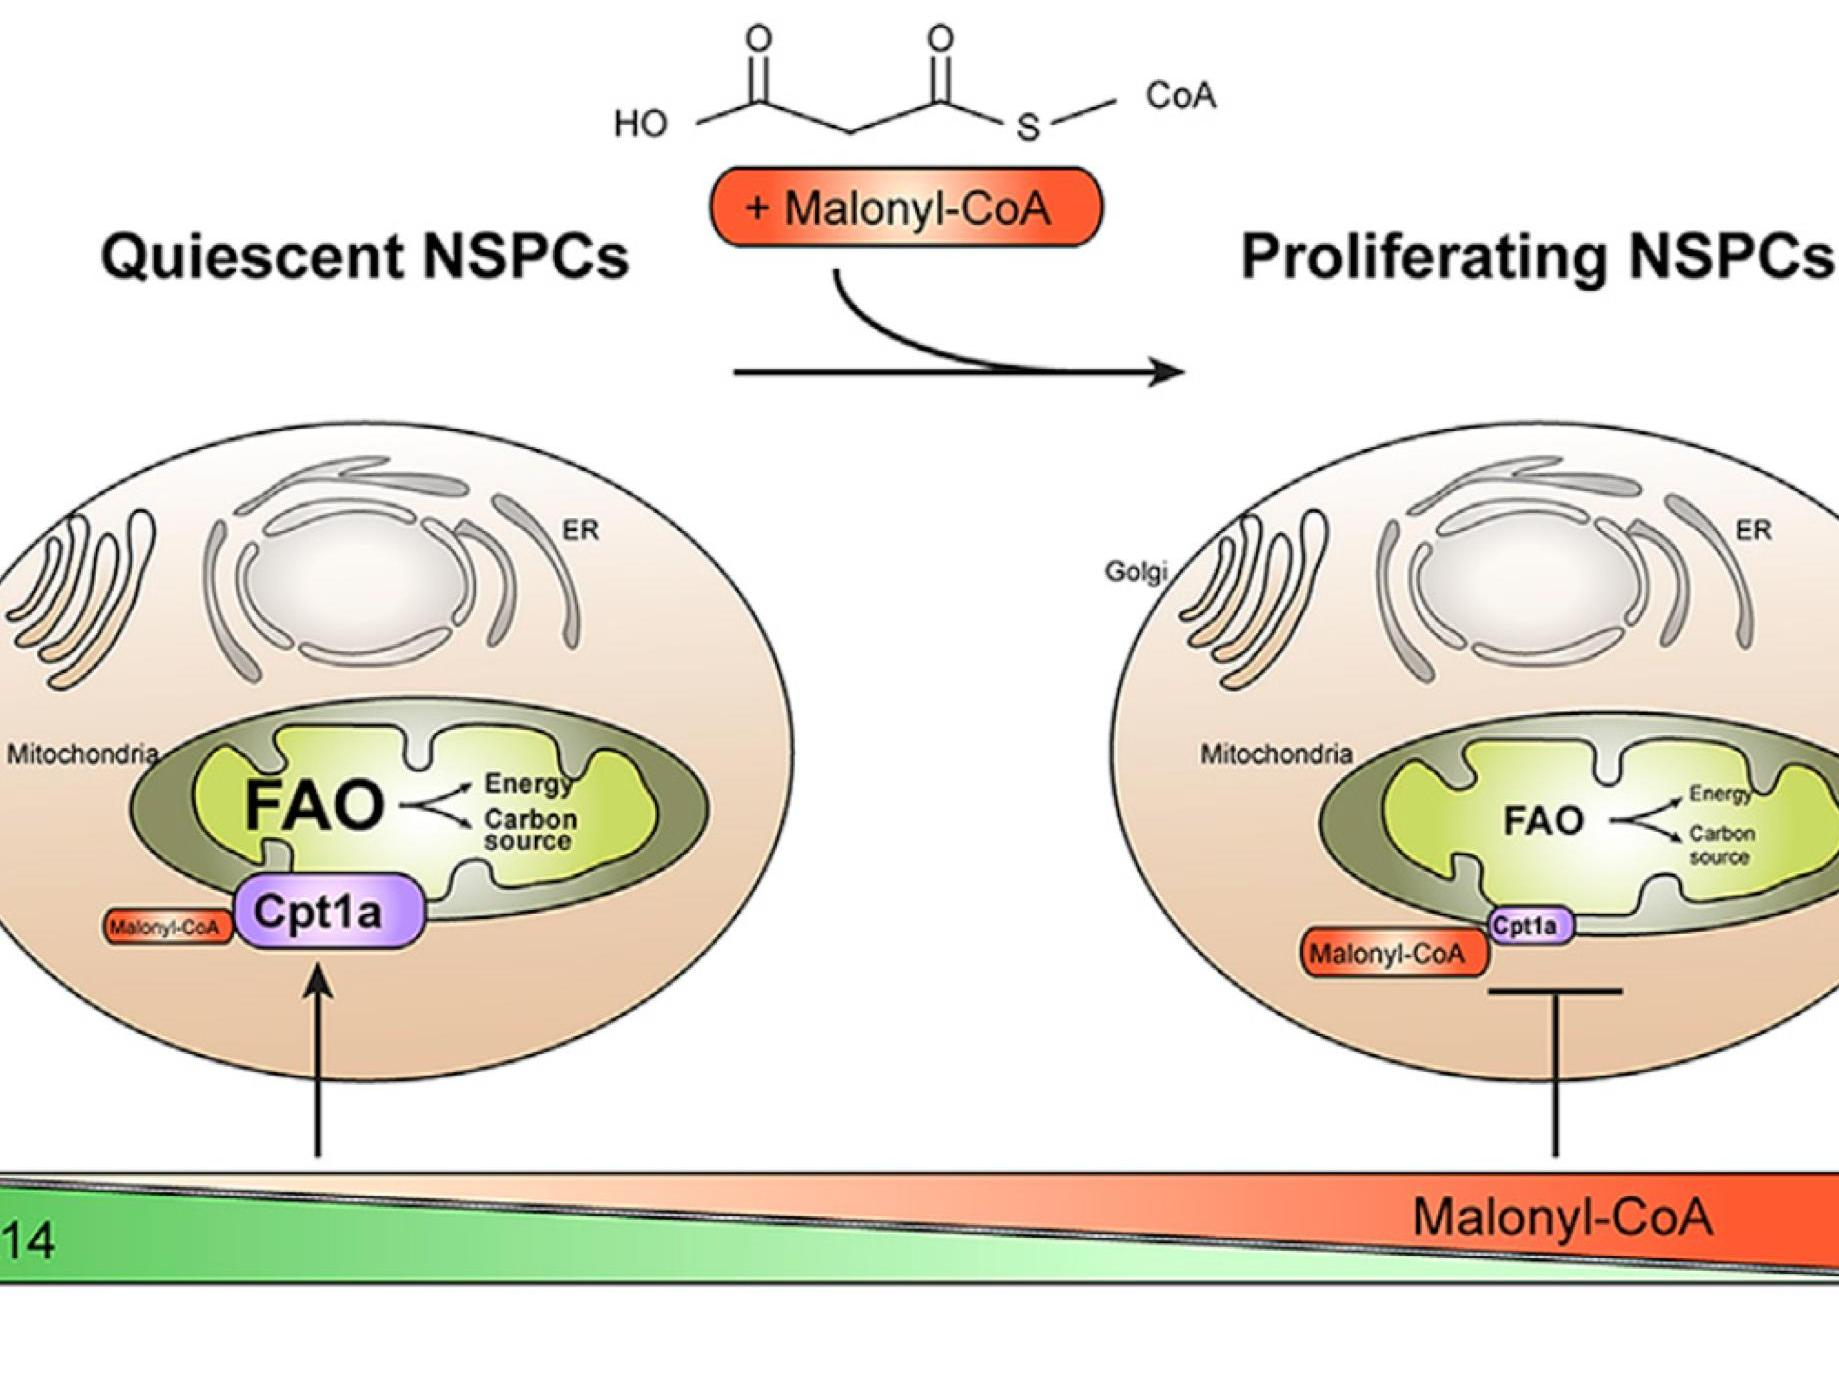 A Fatty Acid Oxidation-Dependent Metabolic Shift Regulates Adult Neural Stem Cell Activity